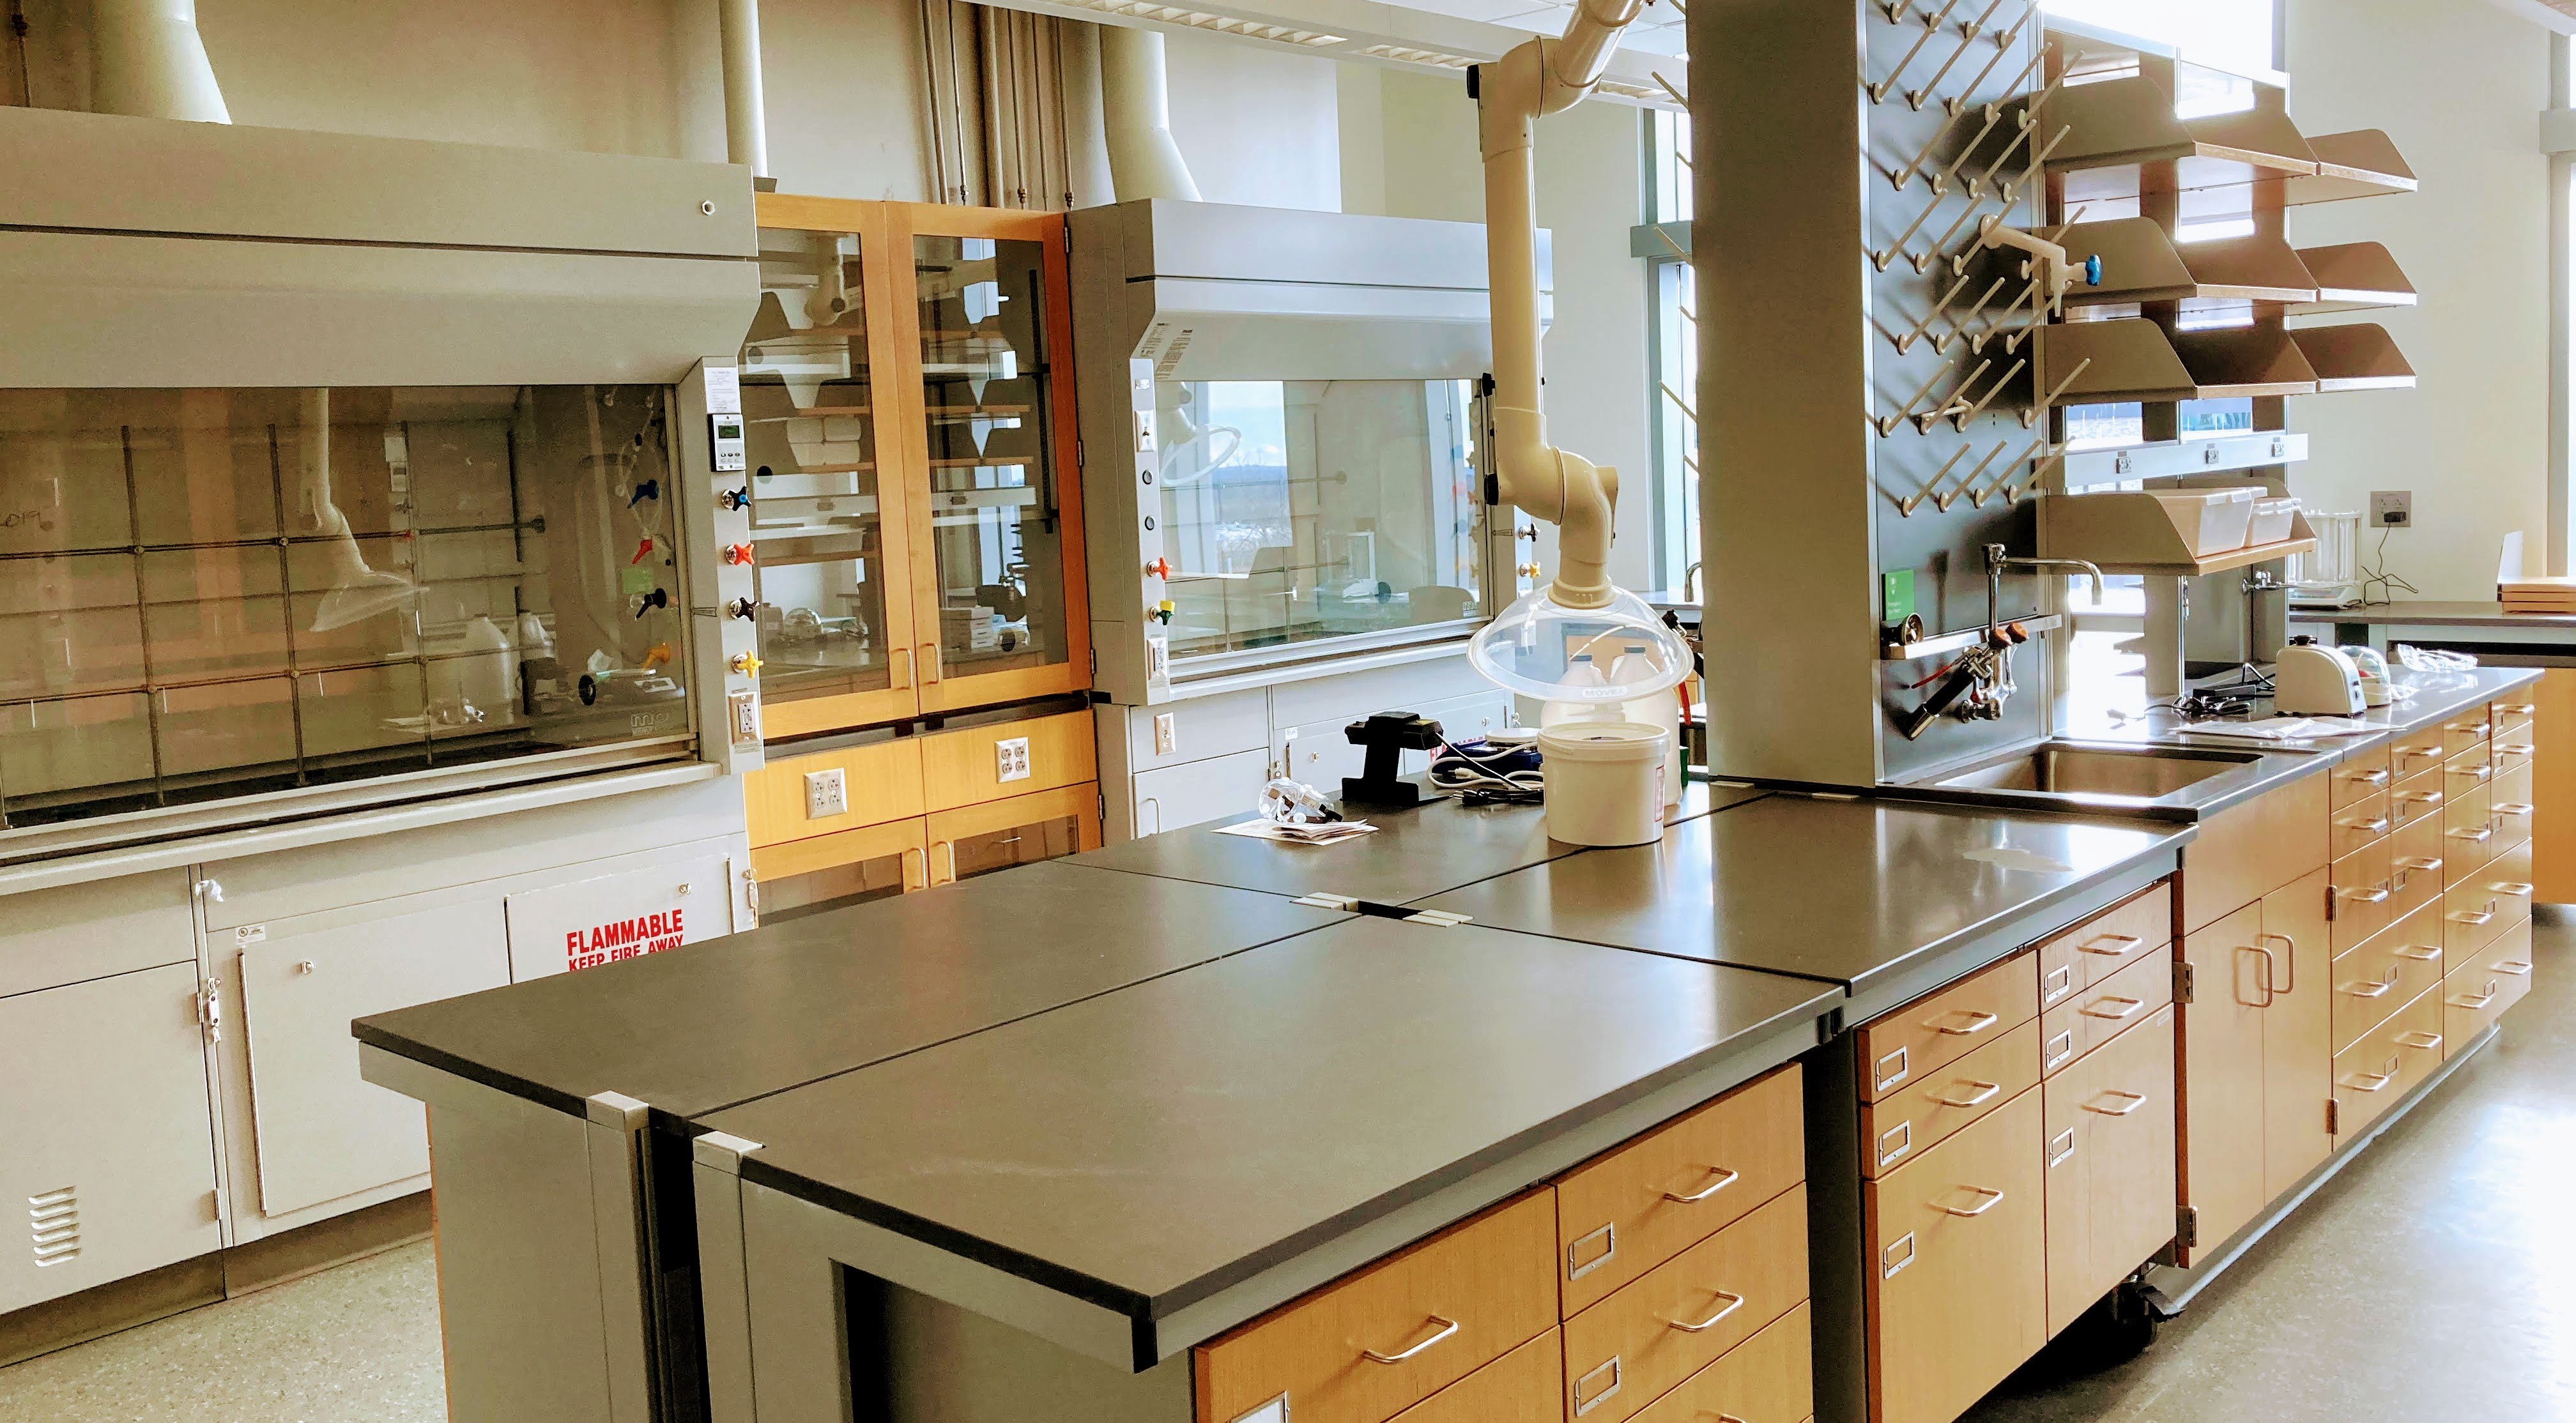 Figure 1. Chemistry laboratory in the Beaupre Center